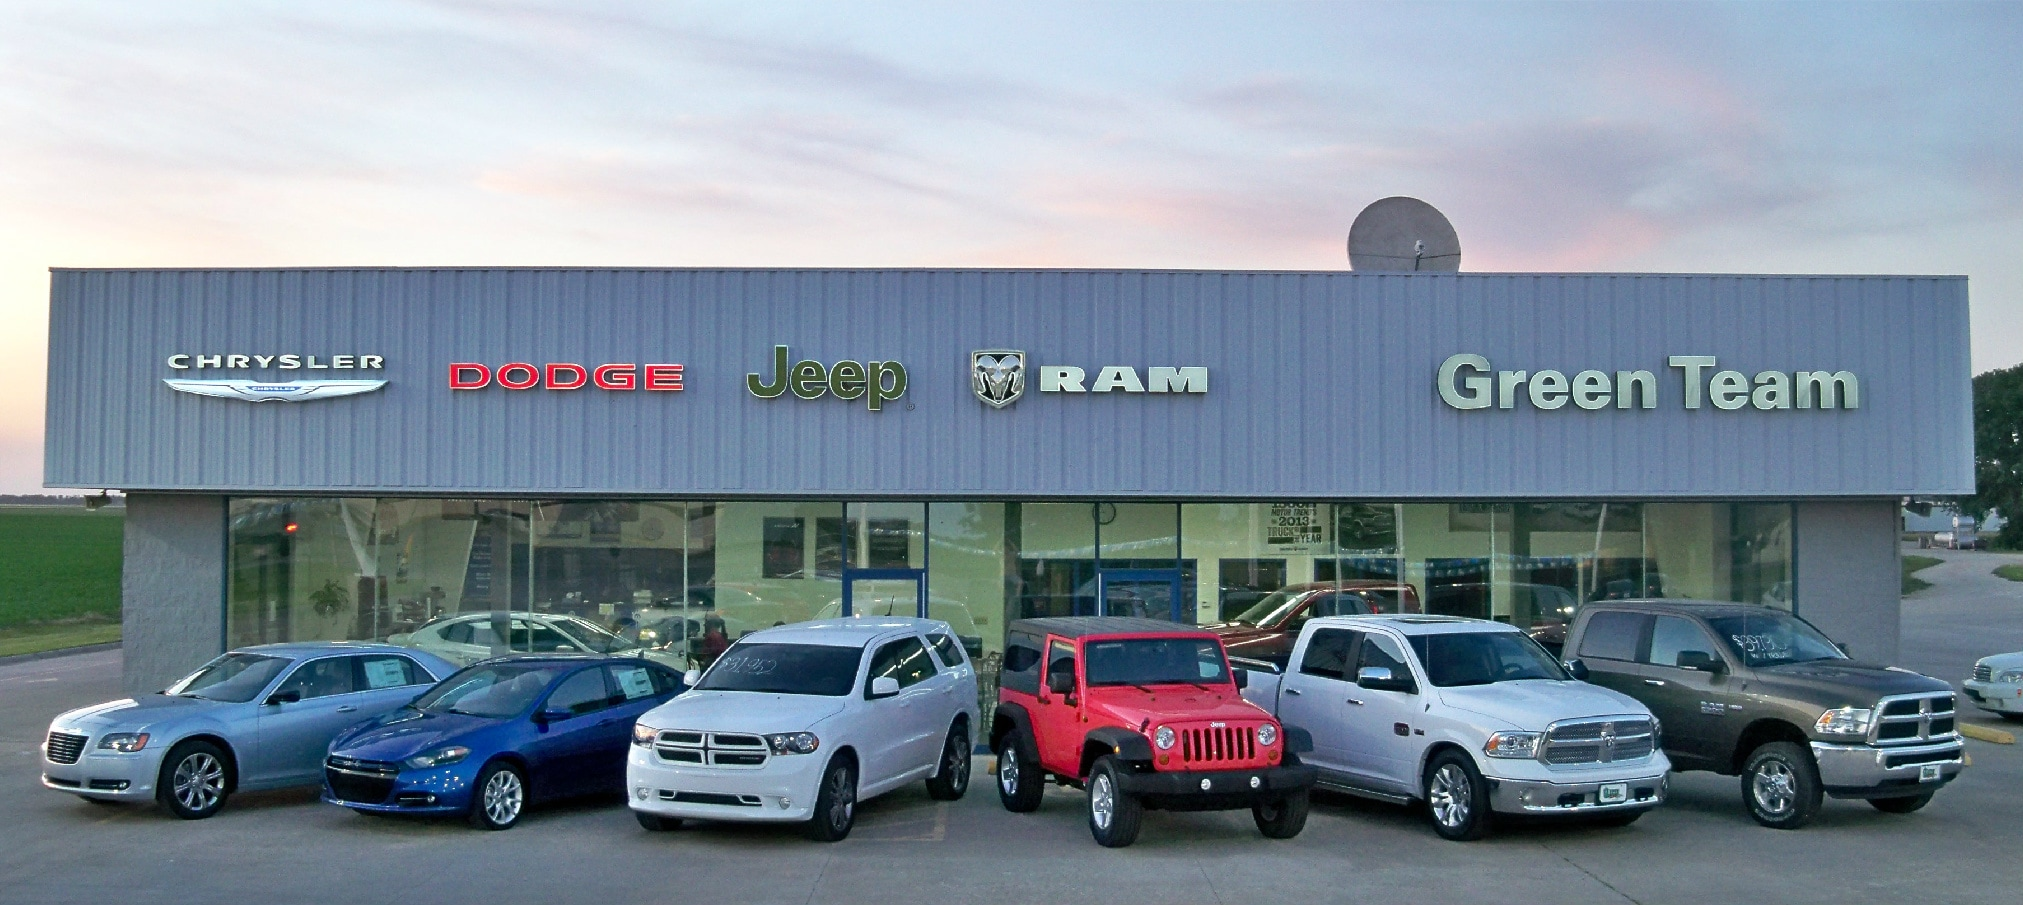 genuine the htm index mountain dodge ltd of maintains inventory rocky chrysler quality a oem new dealer jeep at parts department high comprehensive